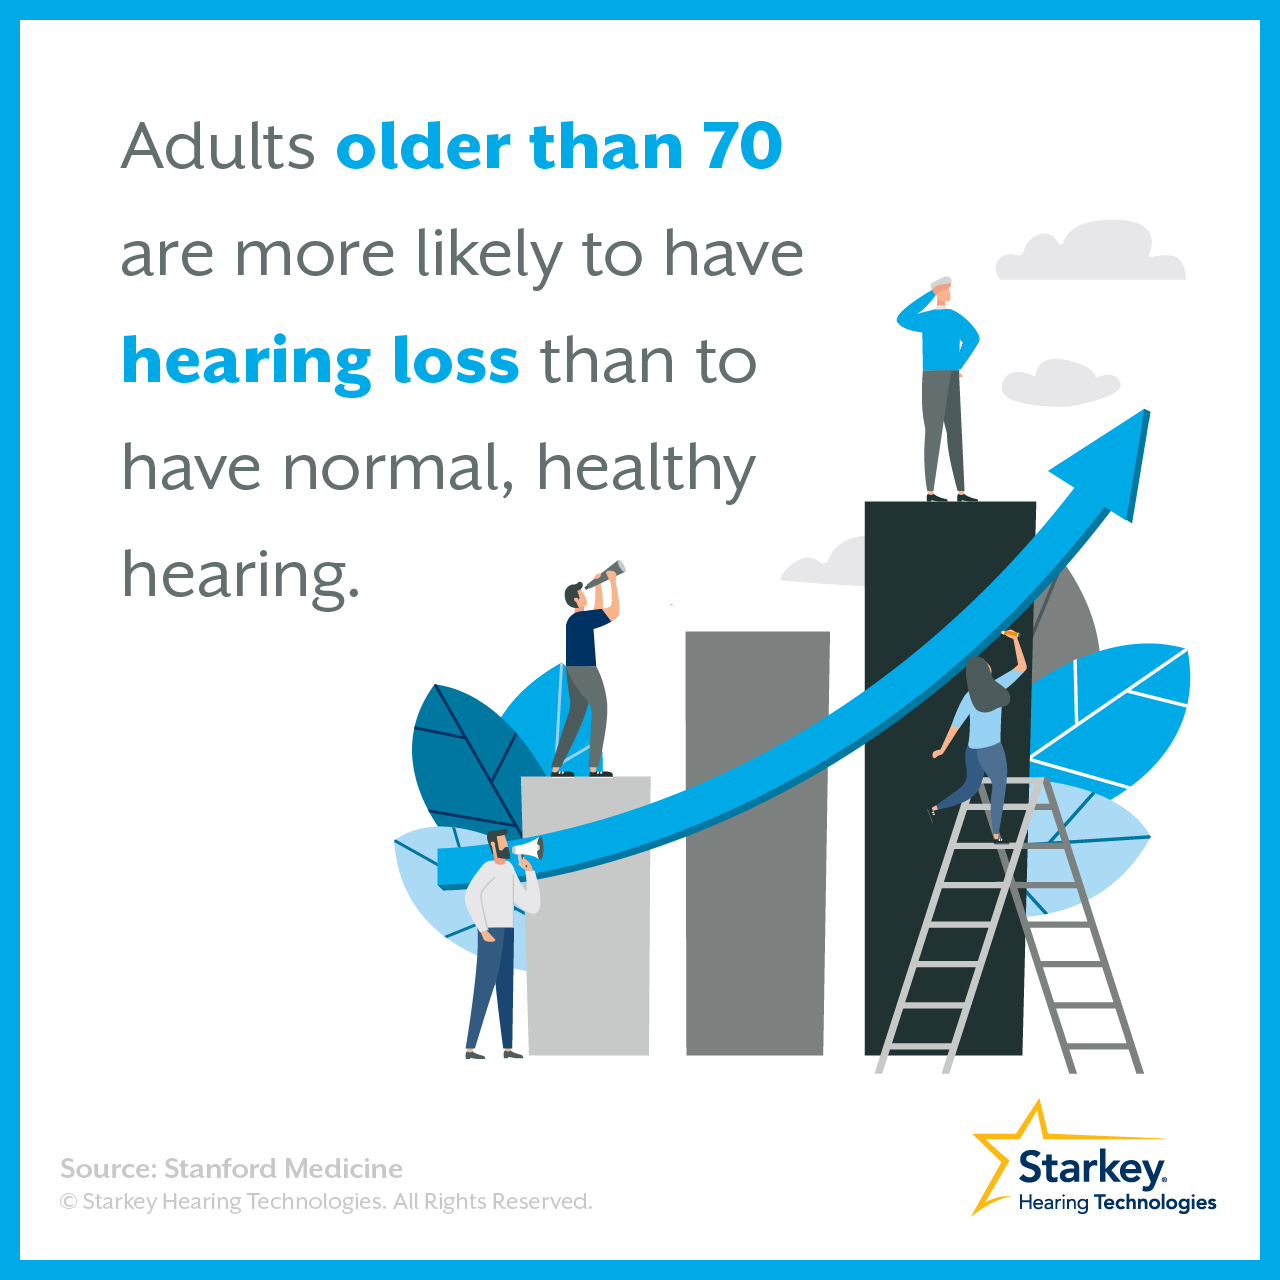 ebf6aaaa15e #HearingFactFriday: More people over 70 have hearing loss than don't